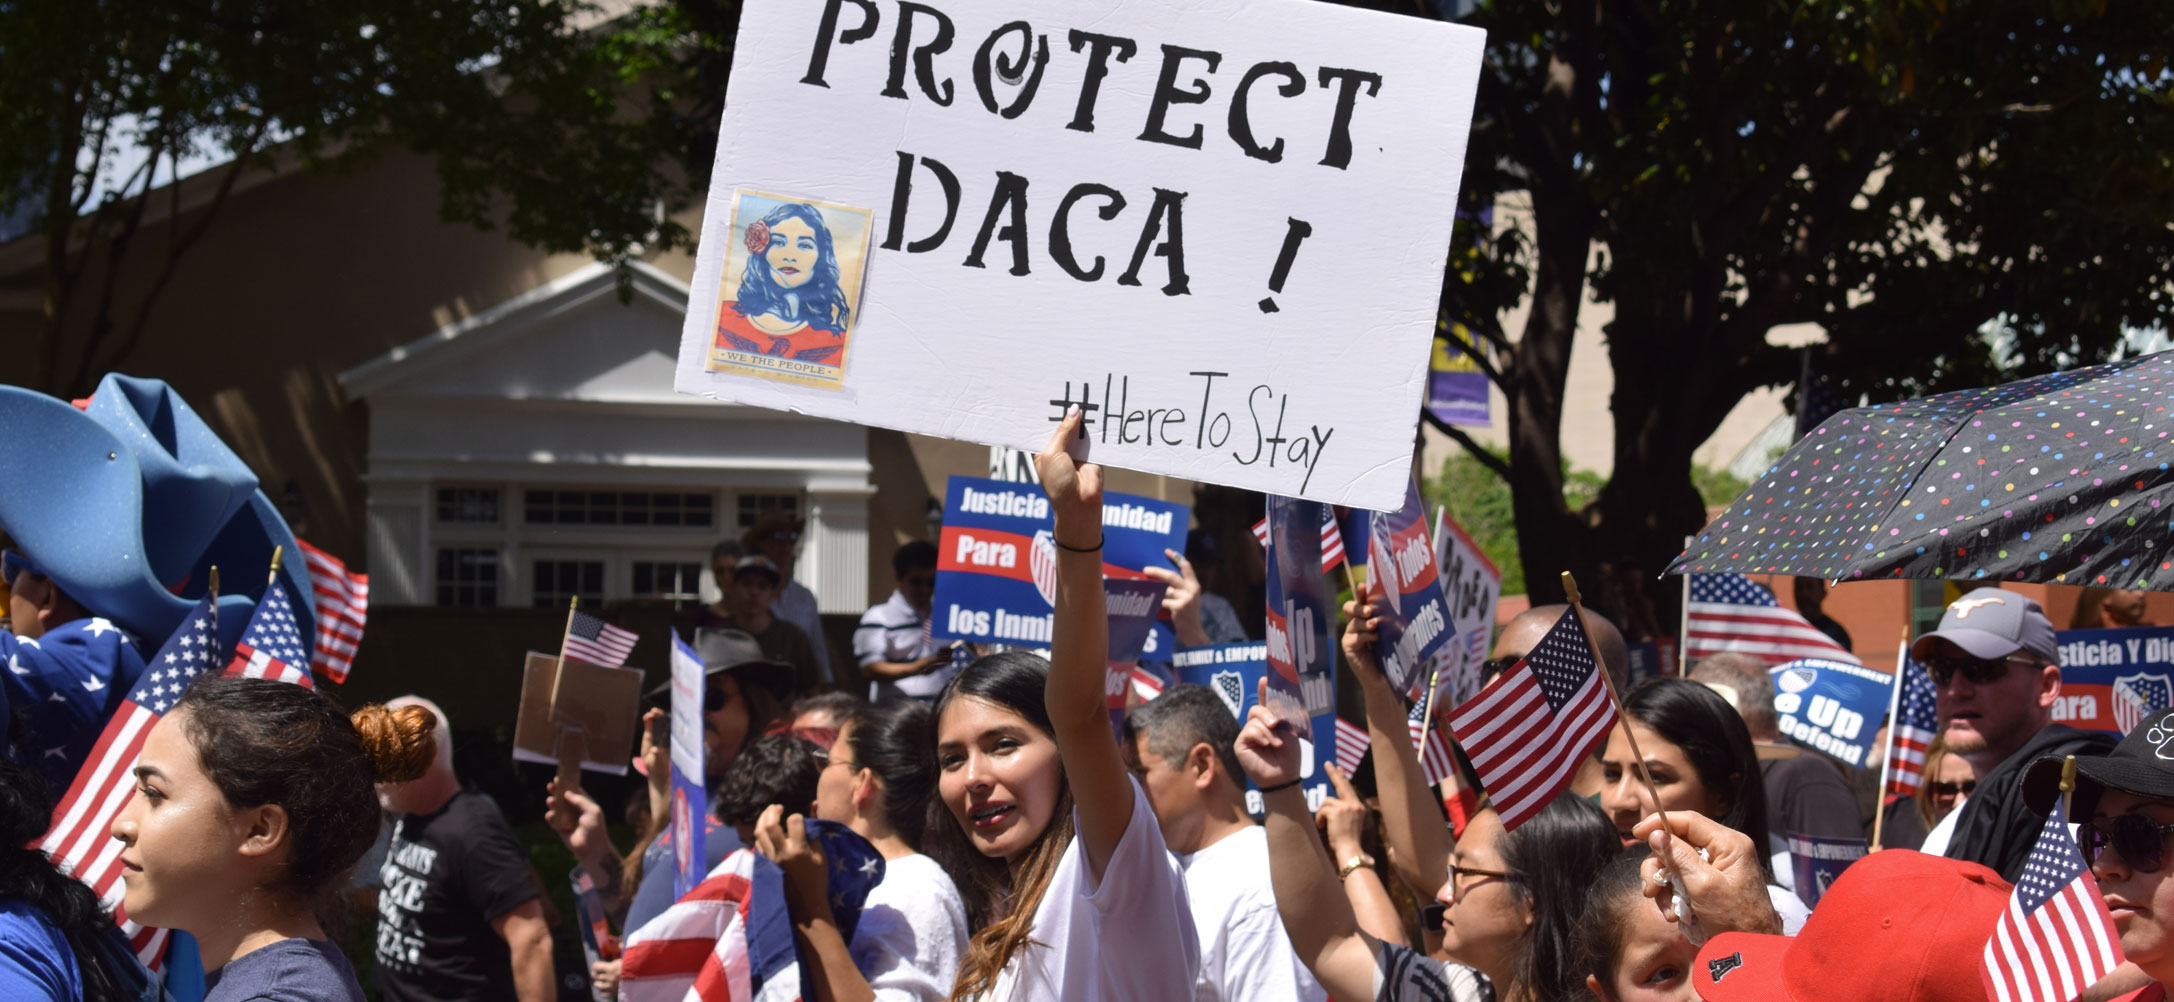 People holding a sign to protect DACA